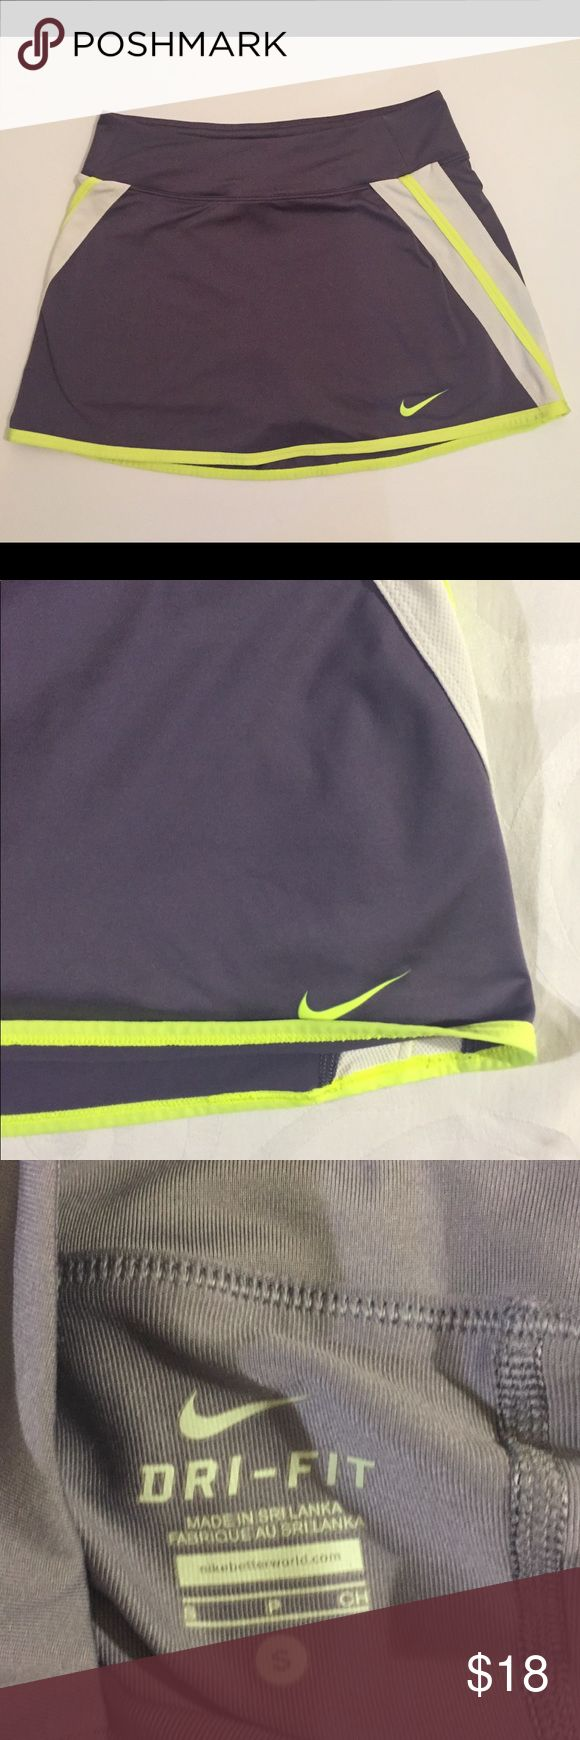 Women's Grey And Neon Yellow  Nike Golf Skirt Women's Nike Grey And Yellow Golf Skirt, Brand new no signs of wear! Women's size small, always open to offers! Nike Skirts Mini